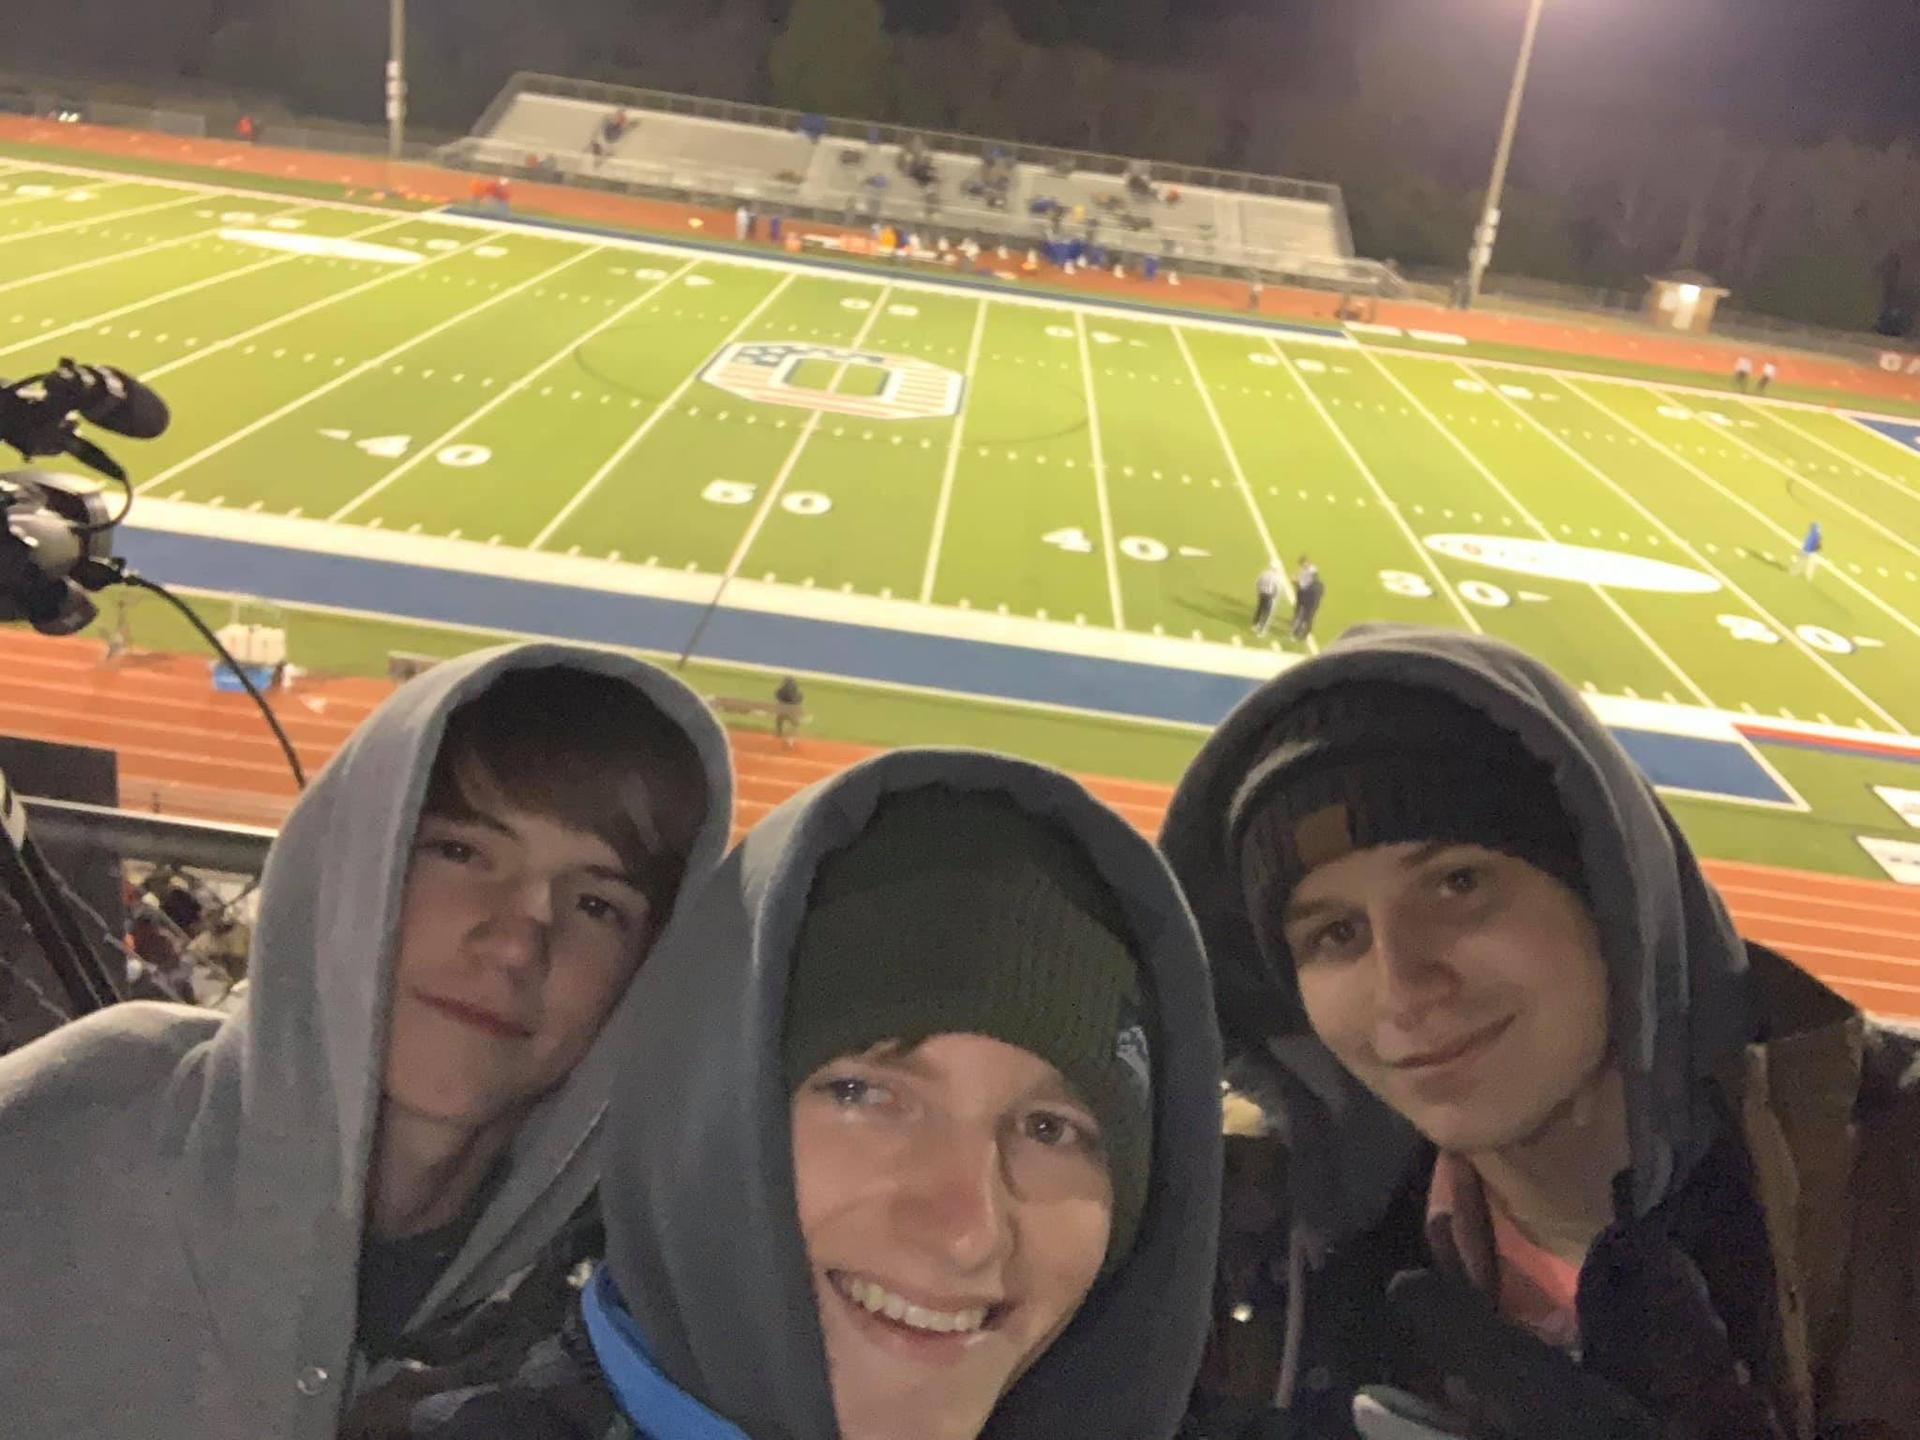 MCHS Broadcast Team Films Oakland Game for NFHS